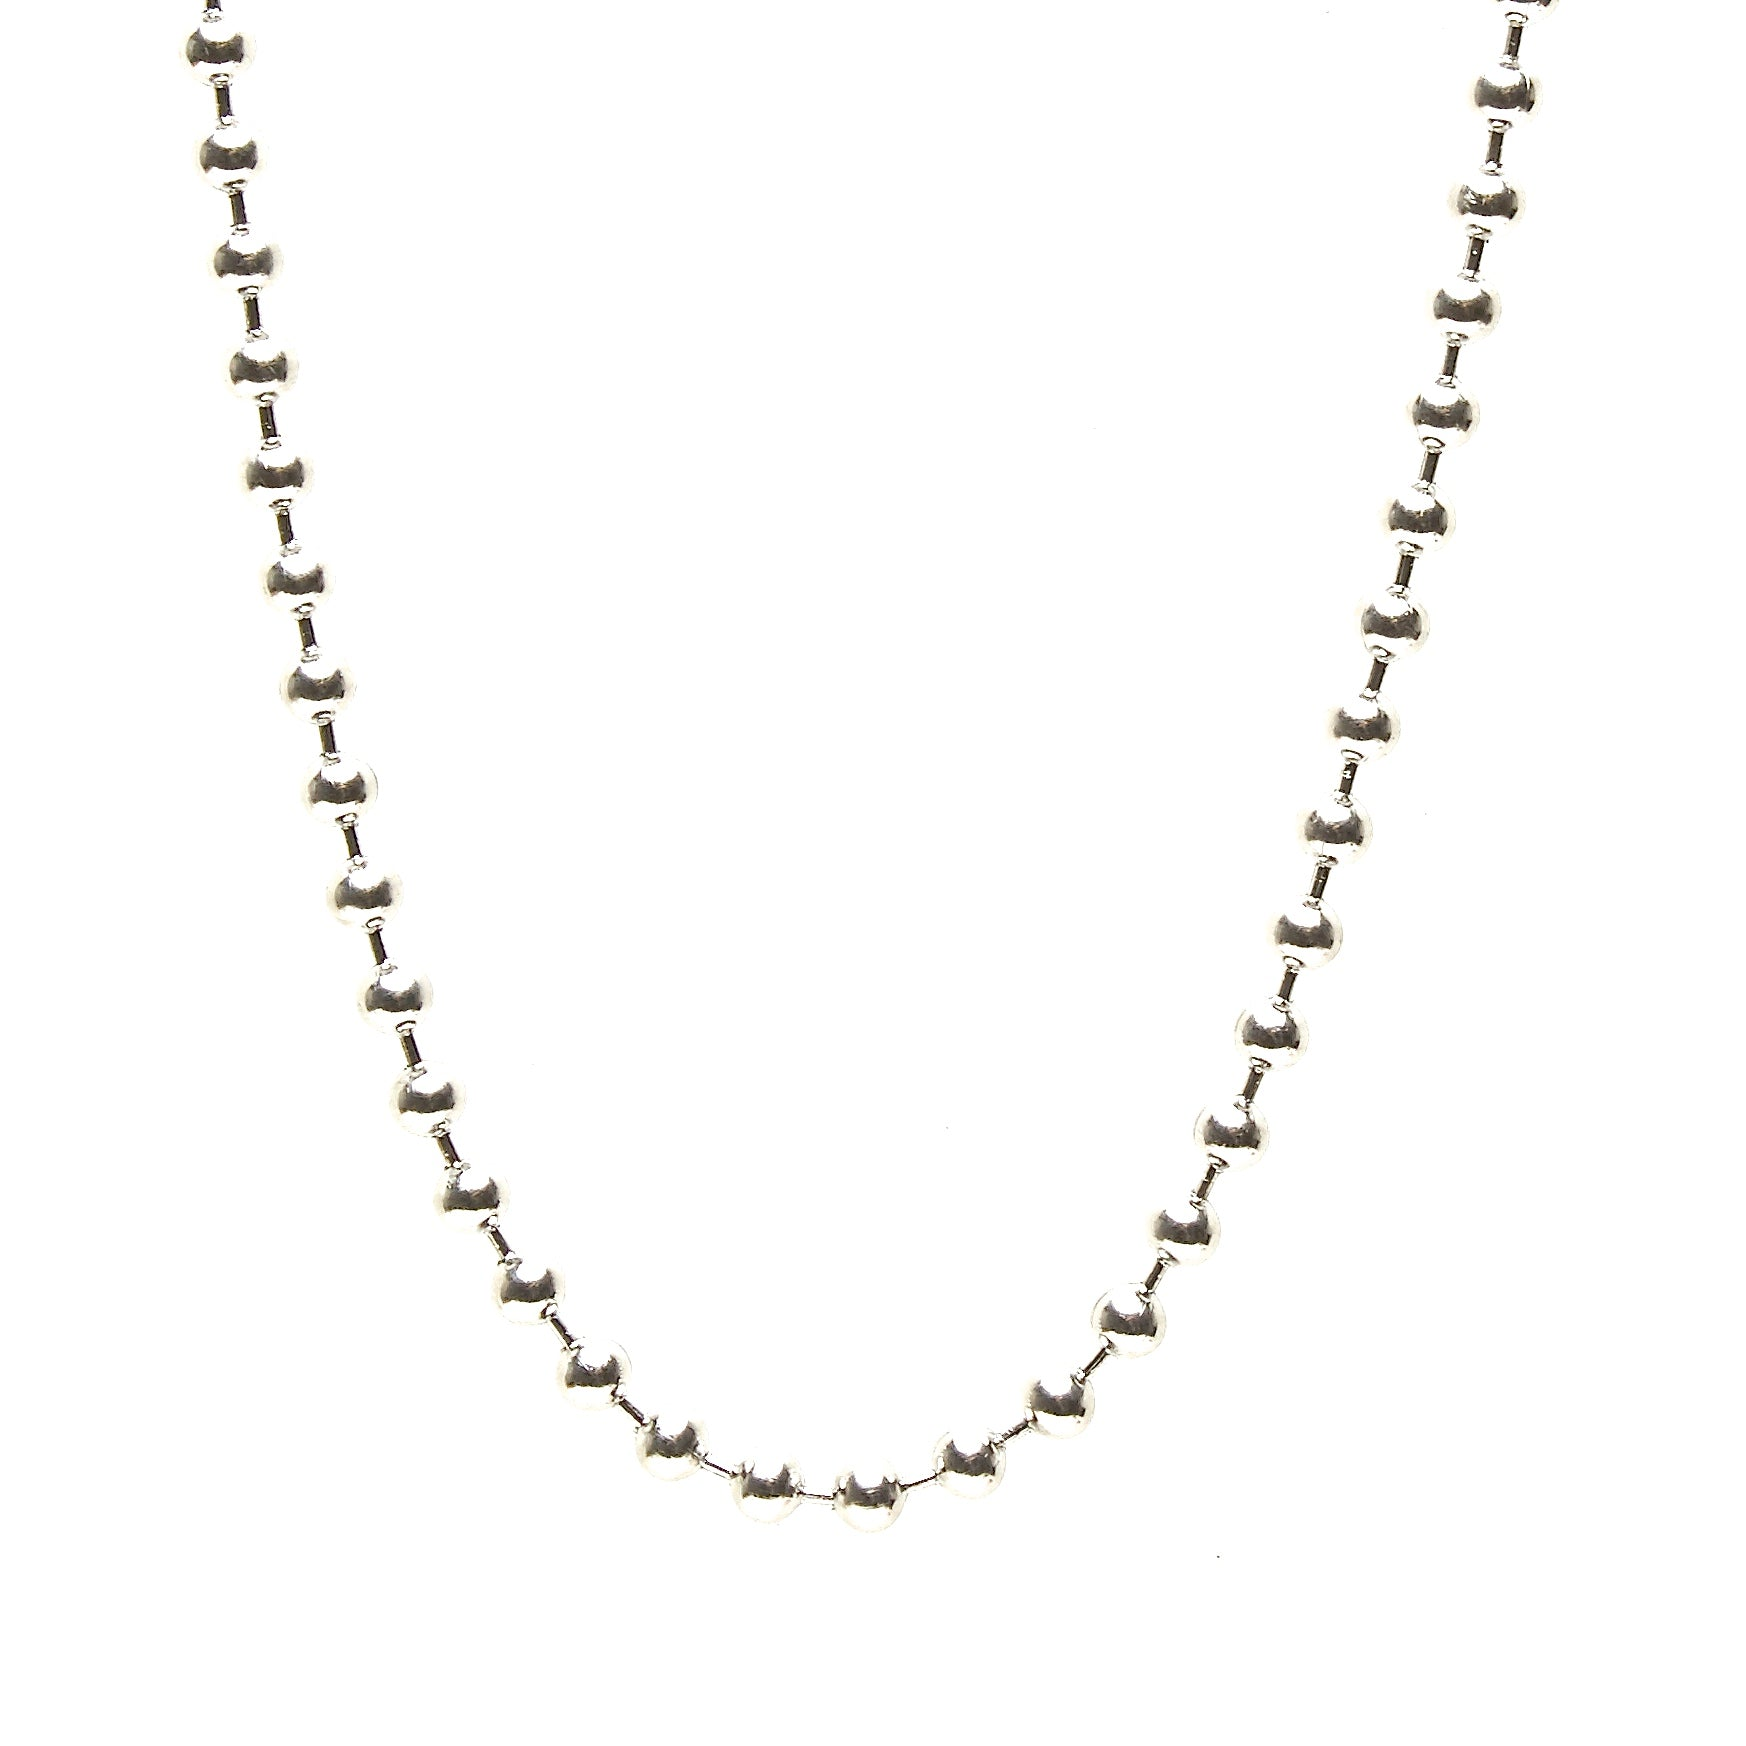 8-MM THICK STAINLESS STEEL BALL CHAIN NECKLACE. BY NYET JEWELRY.